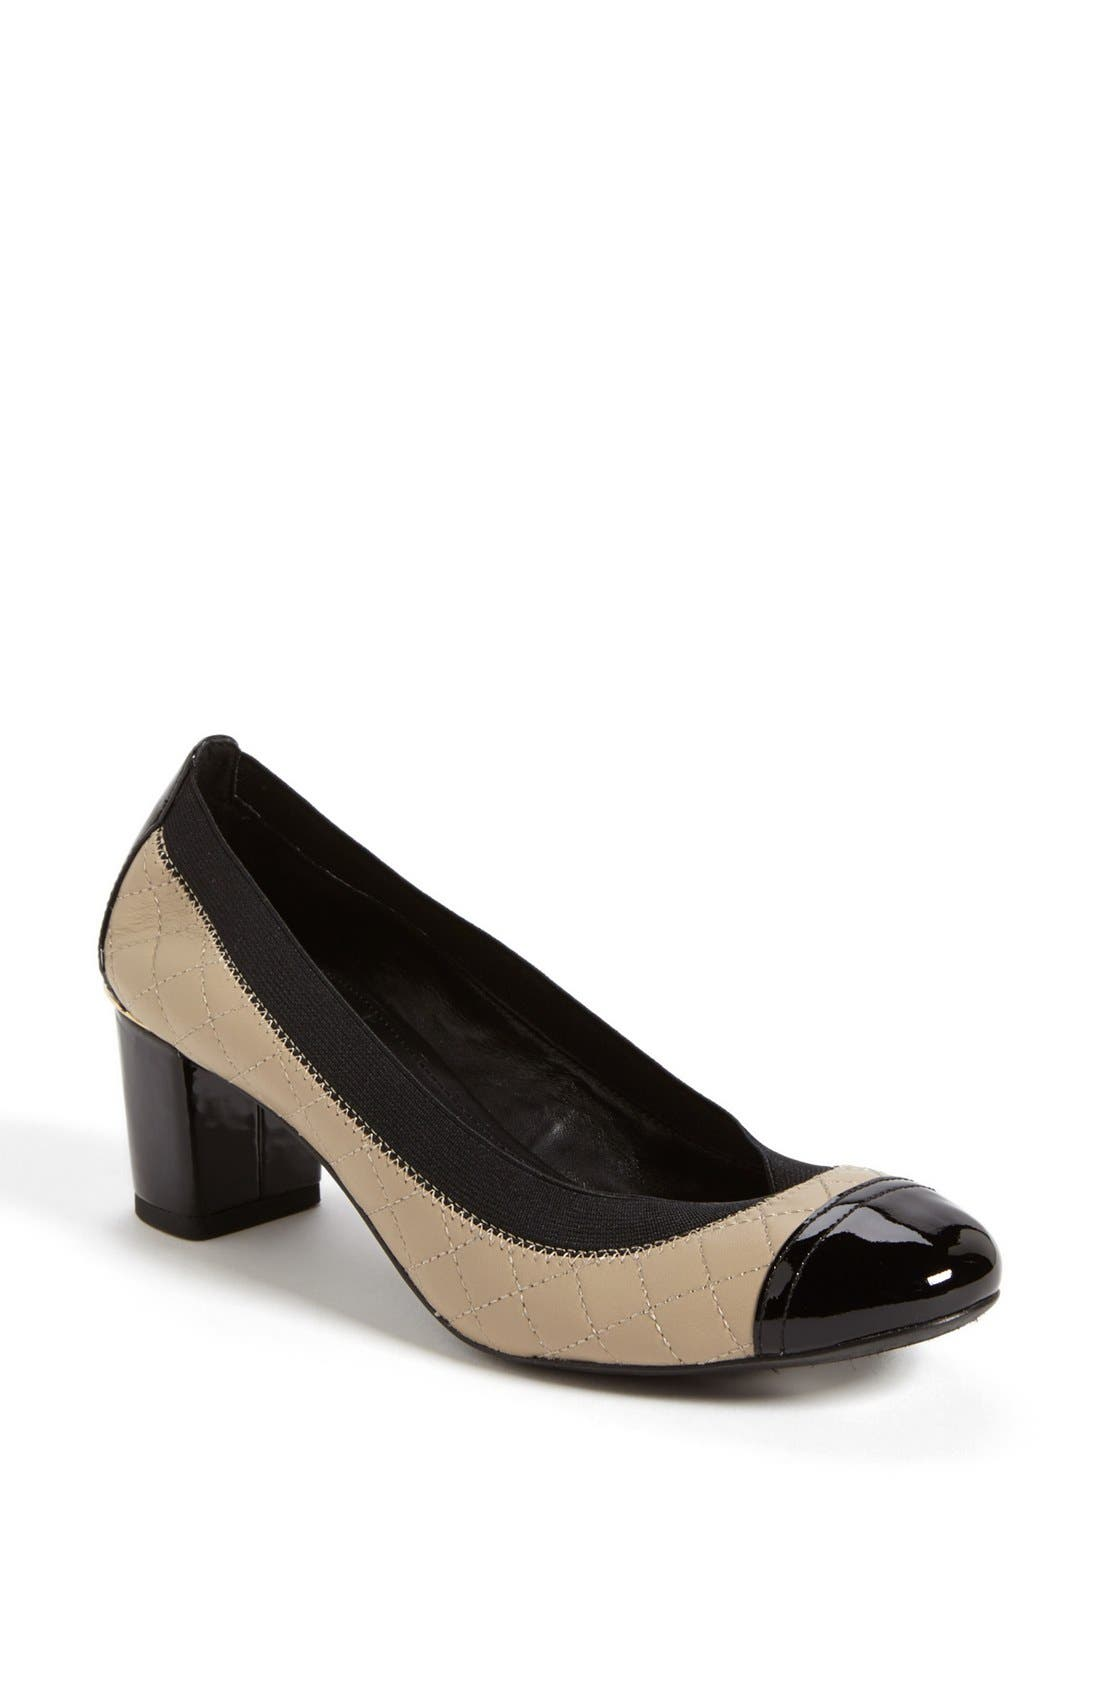 Main Image - Tory Burch 'Carrie' Quilted Leather Cap Toe Pump